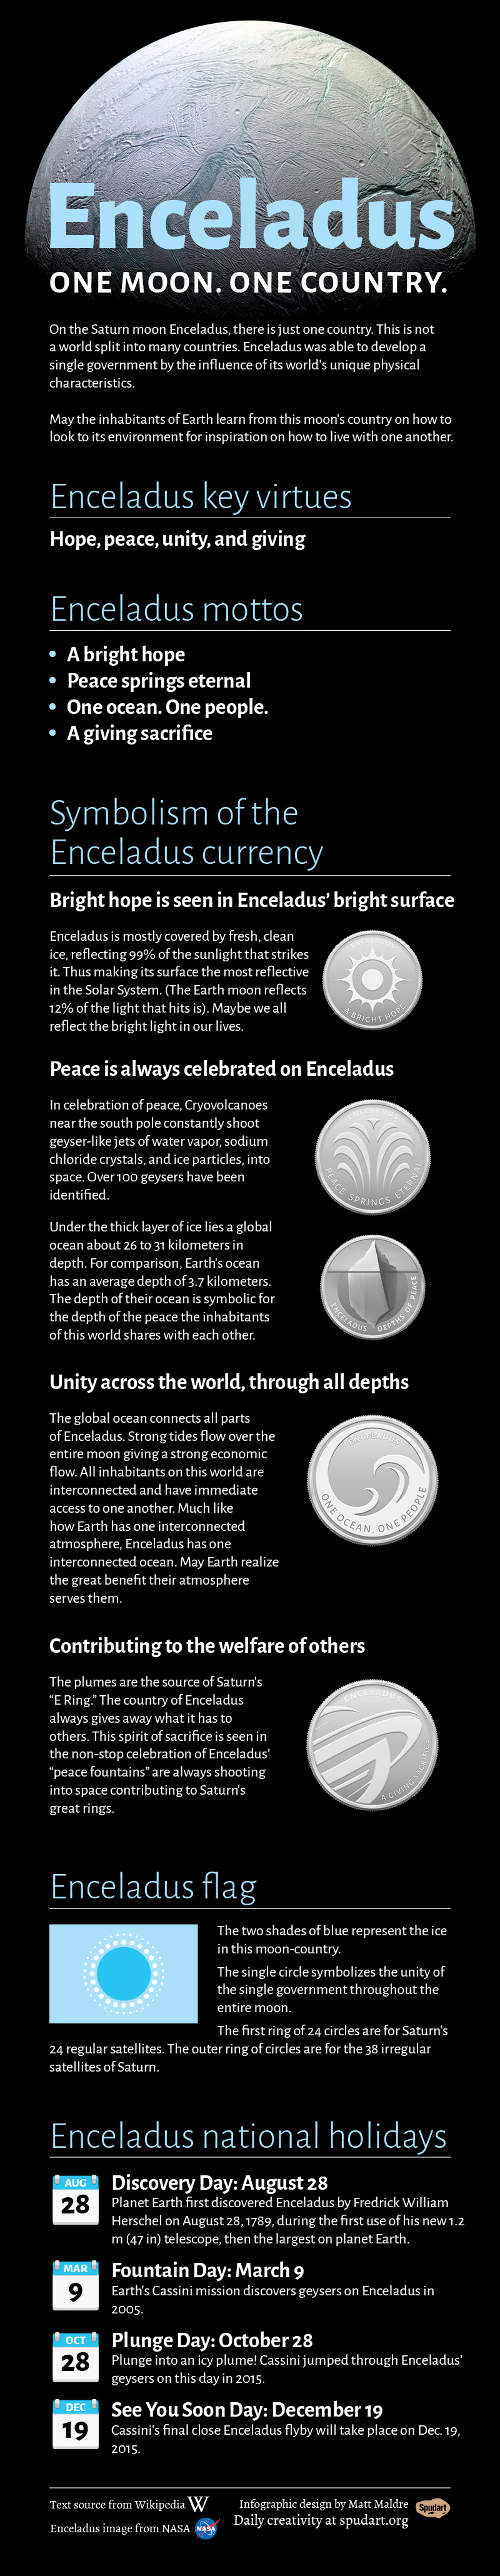 Enceladus-infographic-saturn-moon-fake-country